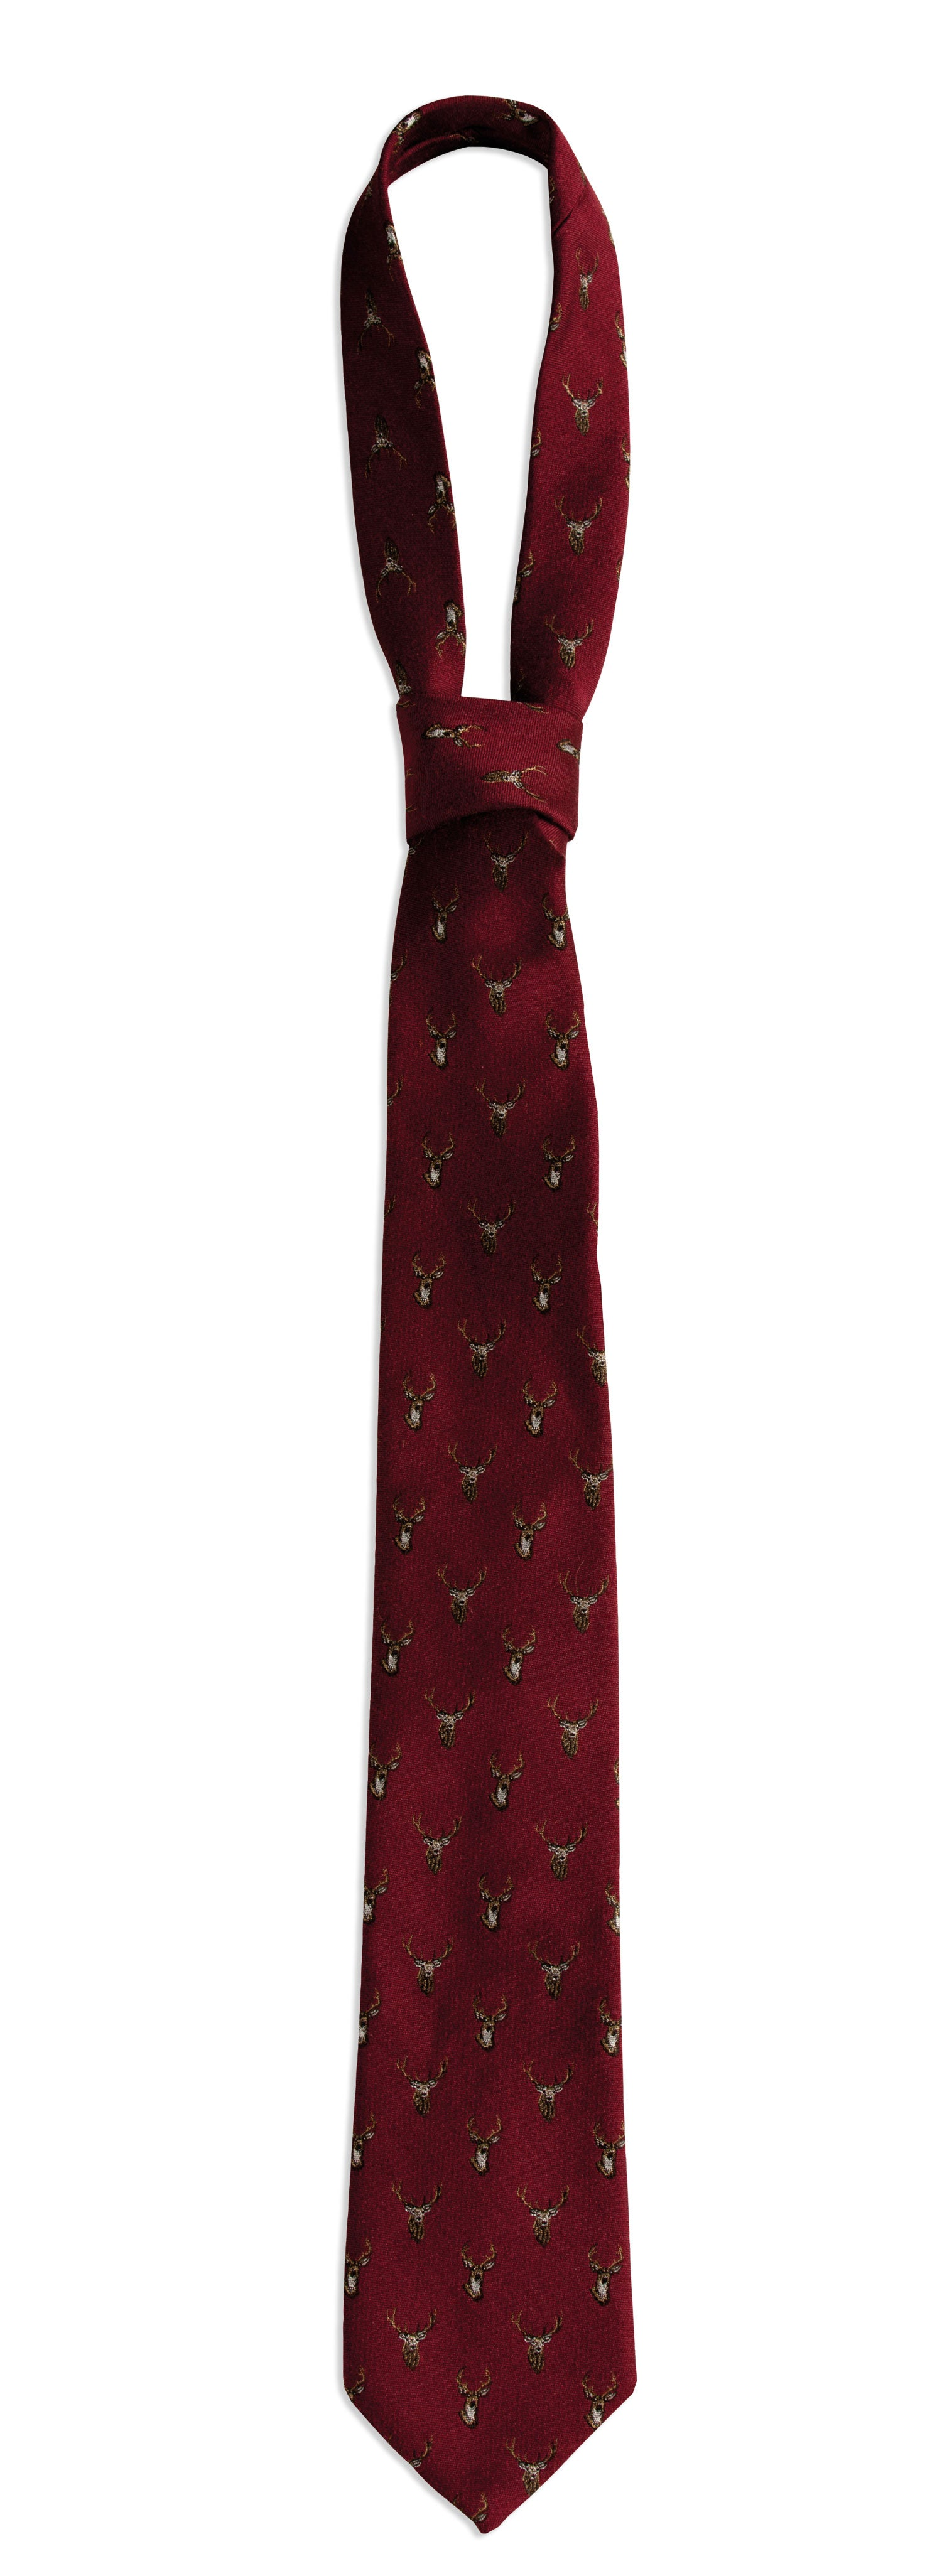 Deerhunter Stag Silk/Wool Tie